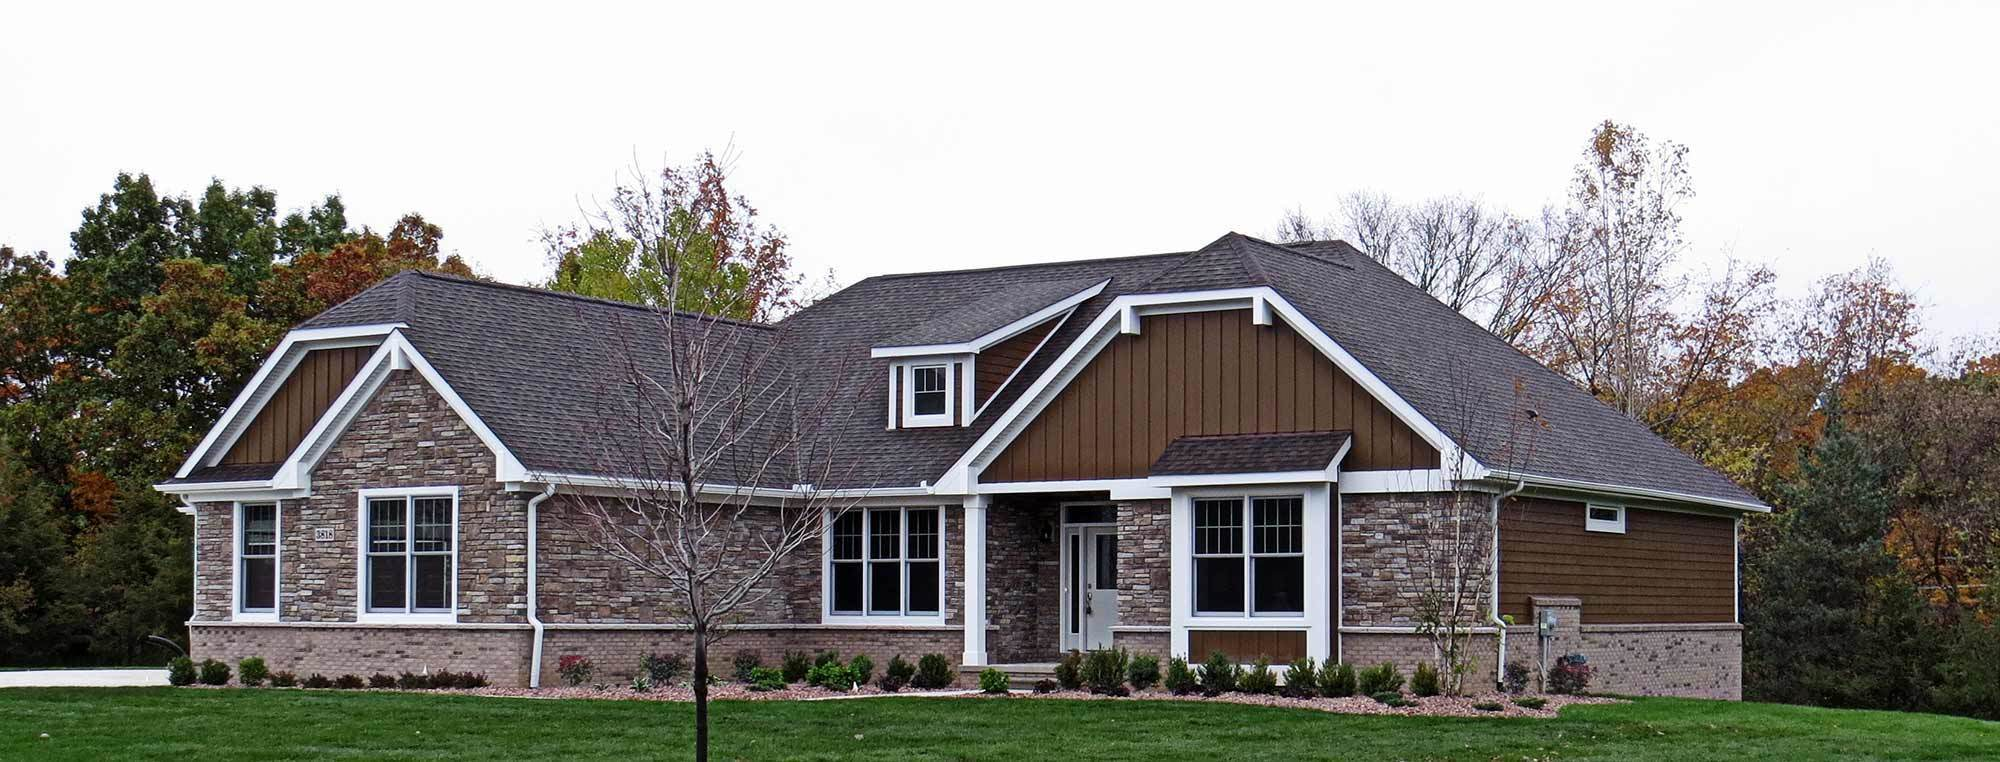 Timber-Green-Home-by-Chestnut-Home-Builders